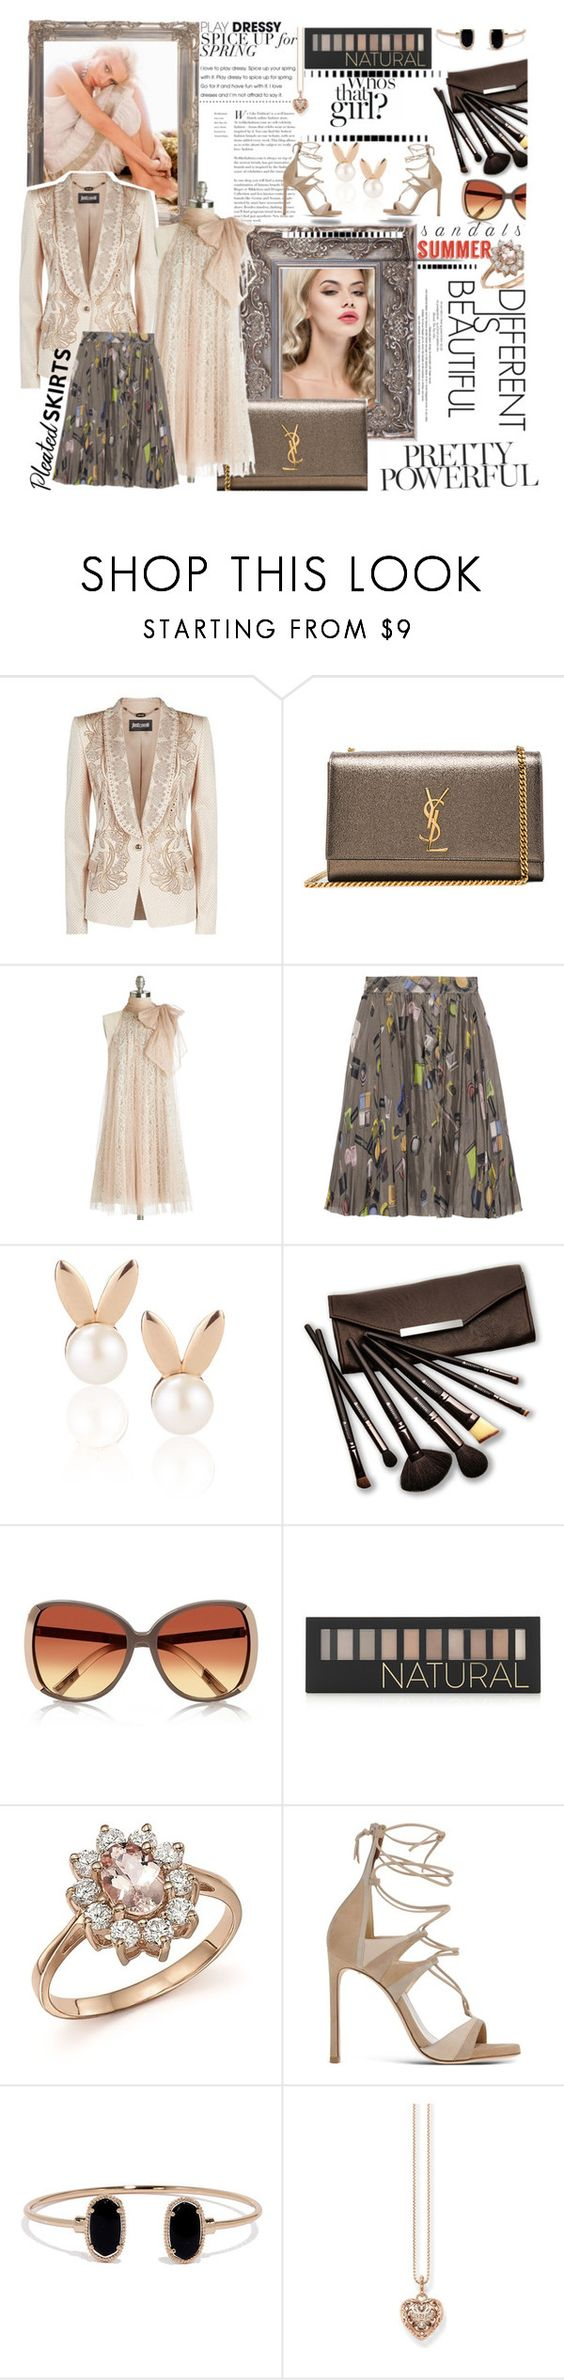 """Dressy lovely outfit with sexy sandals for the summer"" by carleen1978 ❤ liked on Polyvore featuring Just Cavalli, Yves Saint Laurent, Ryu, Moschino Cheap & Chic, Aamaya by priyanka, Borghese, River Island, Forever 21, Bloomingdale's and Stuart Weitzman"